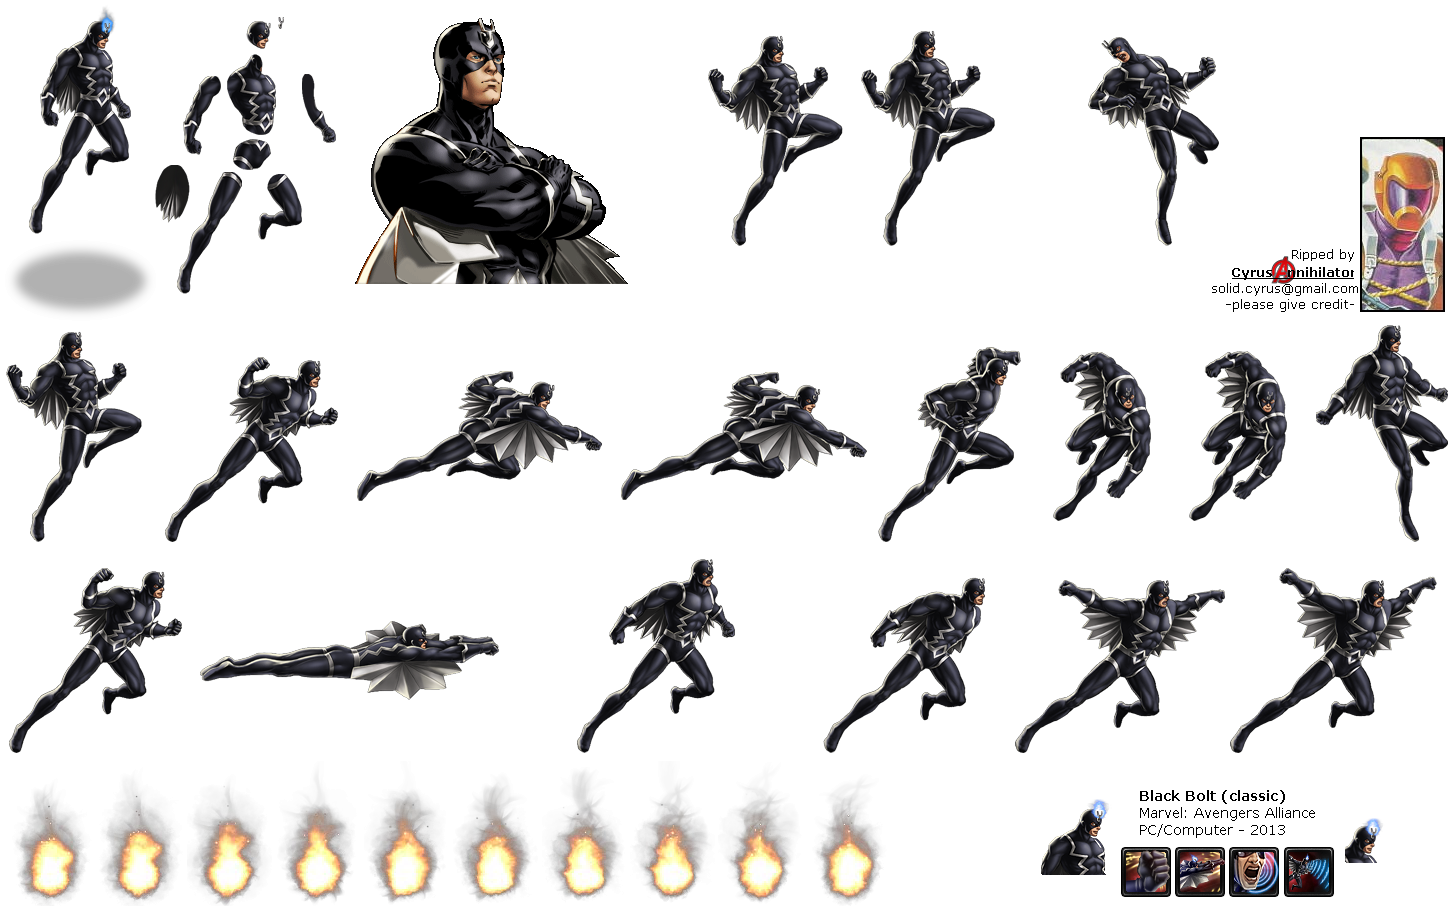 57100 pc computer marvel avengers alliance black bolt (classic marvel 13a wiring diagram at reclaimingppi.co